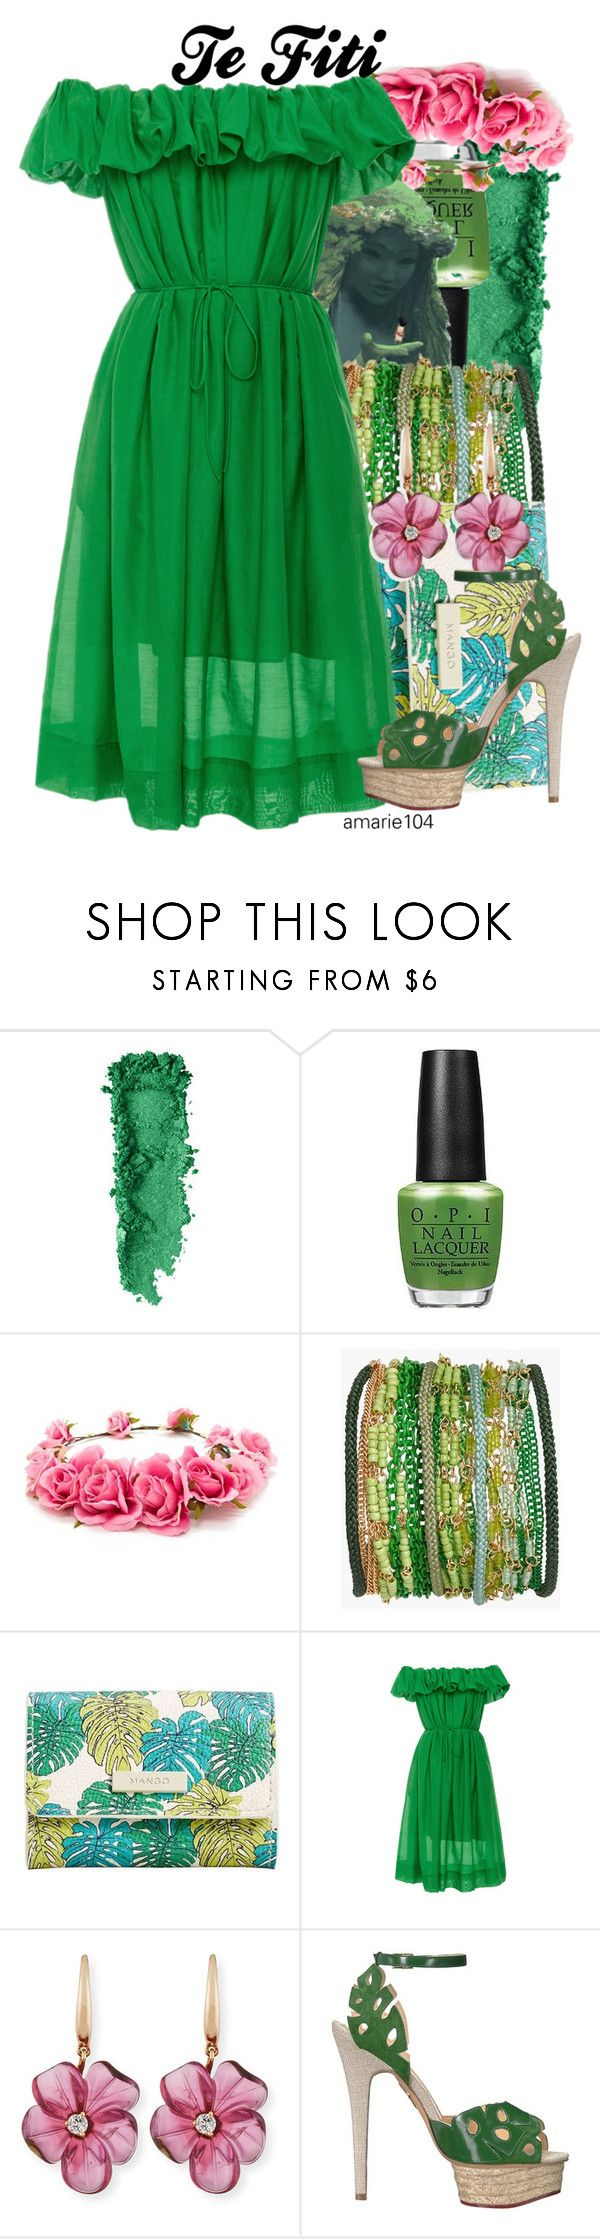 """""""Te Fiti"""" by amarie104 ❤ liked on Polyvore featuring Forever 21, Sequin, MANGO, Paule Ka, Rina Limor and Charlotte Olympia"""